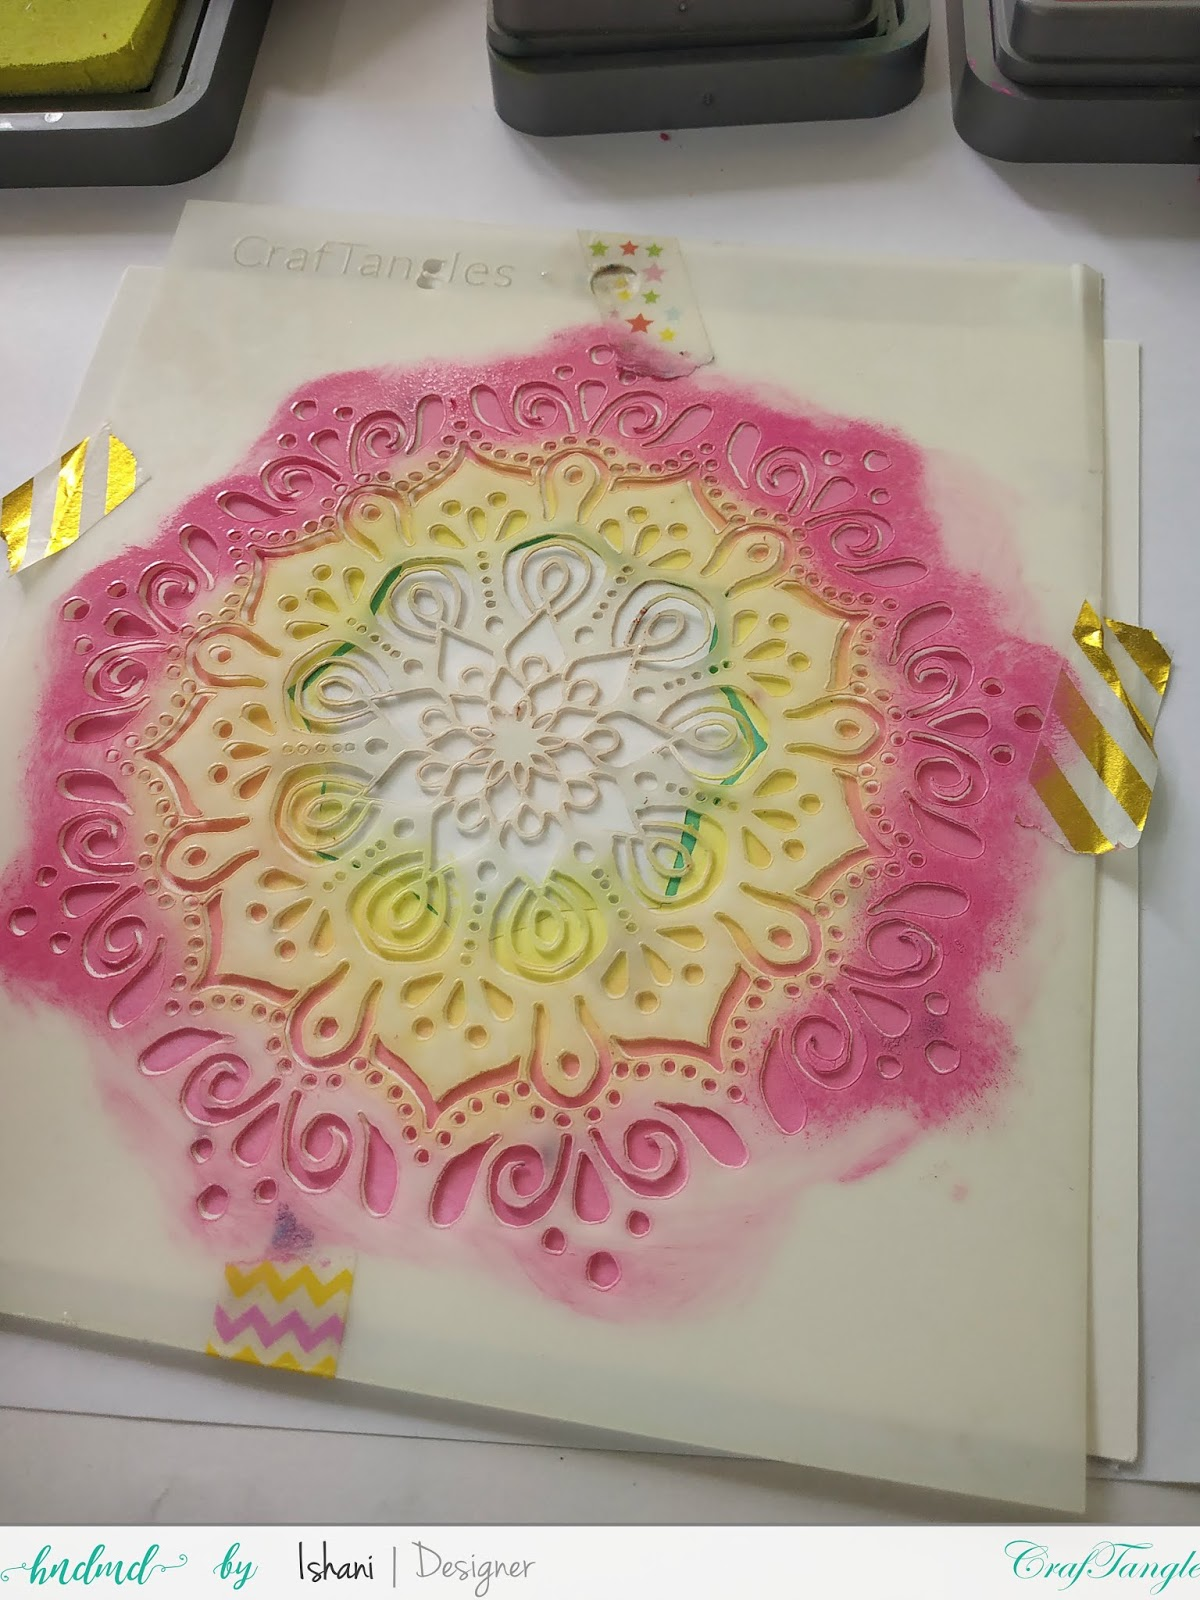 Cardmaking with stencils by Ishani 5